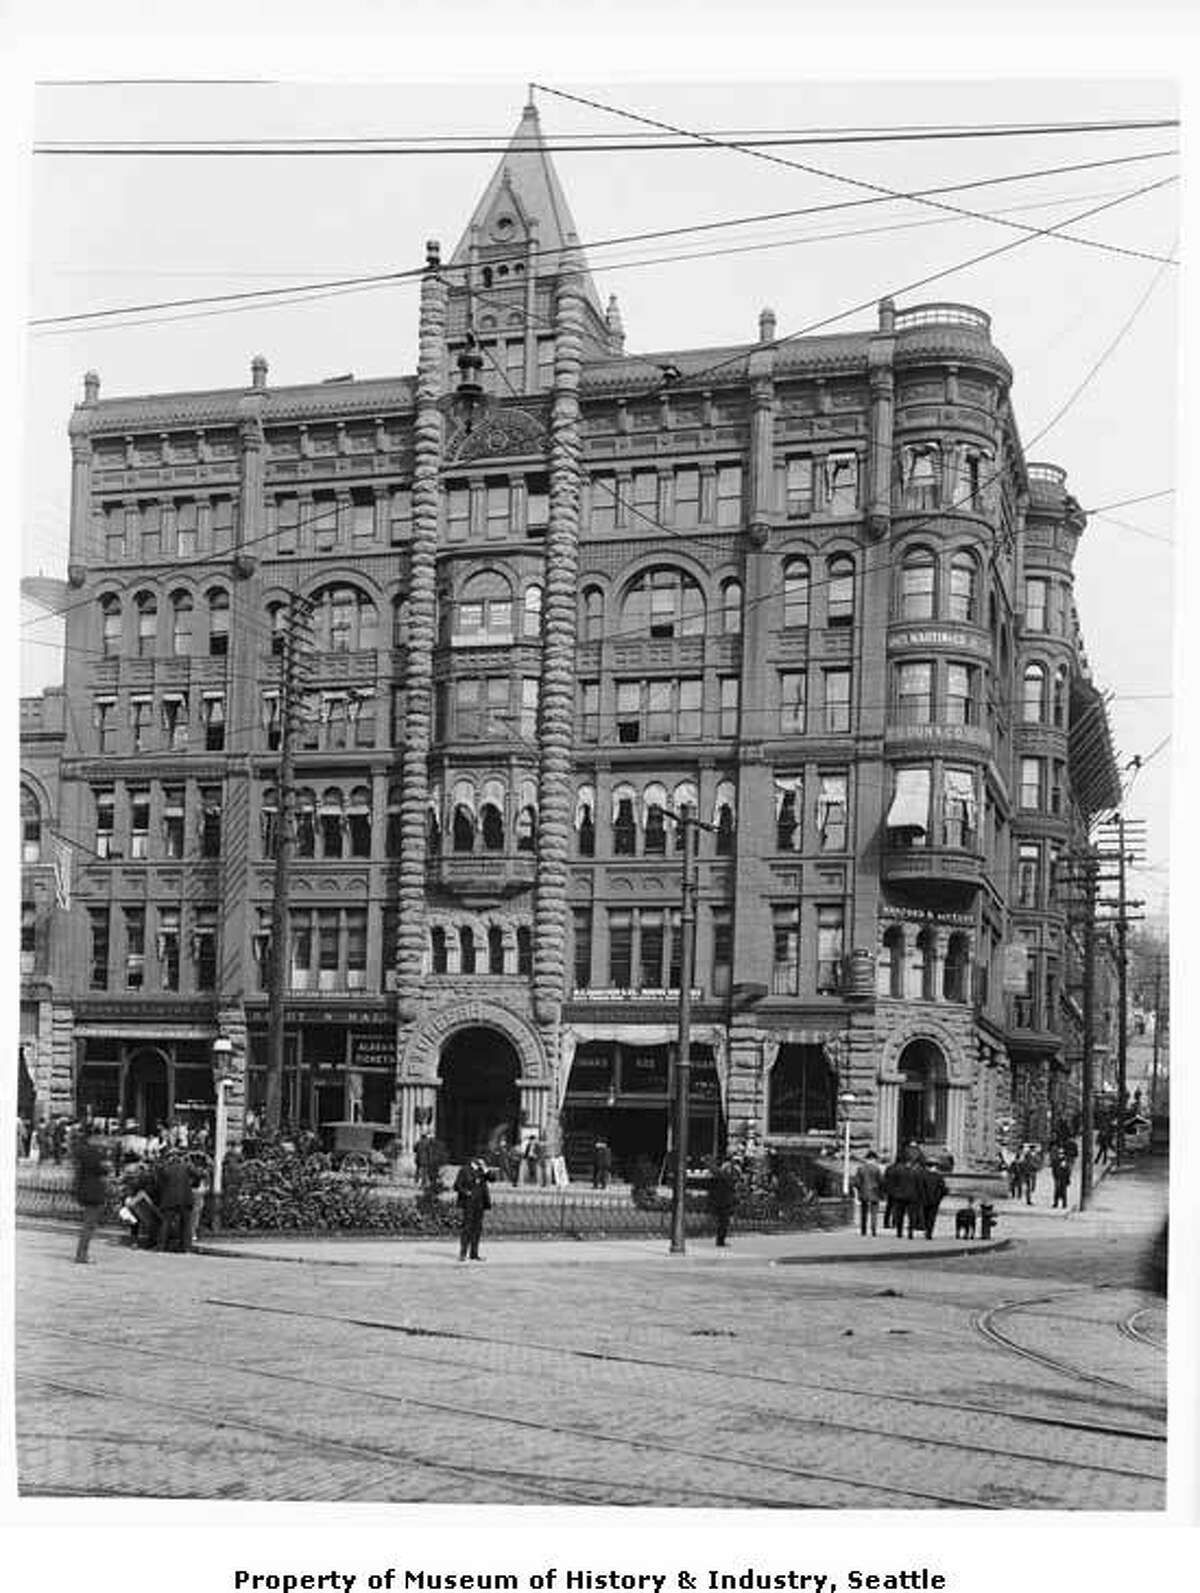 Finished in 1892 and standing 110 feet tall, the Pioneer Building was Seattle's tallest building for 12 years.